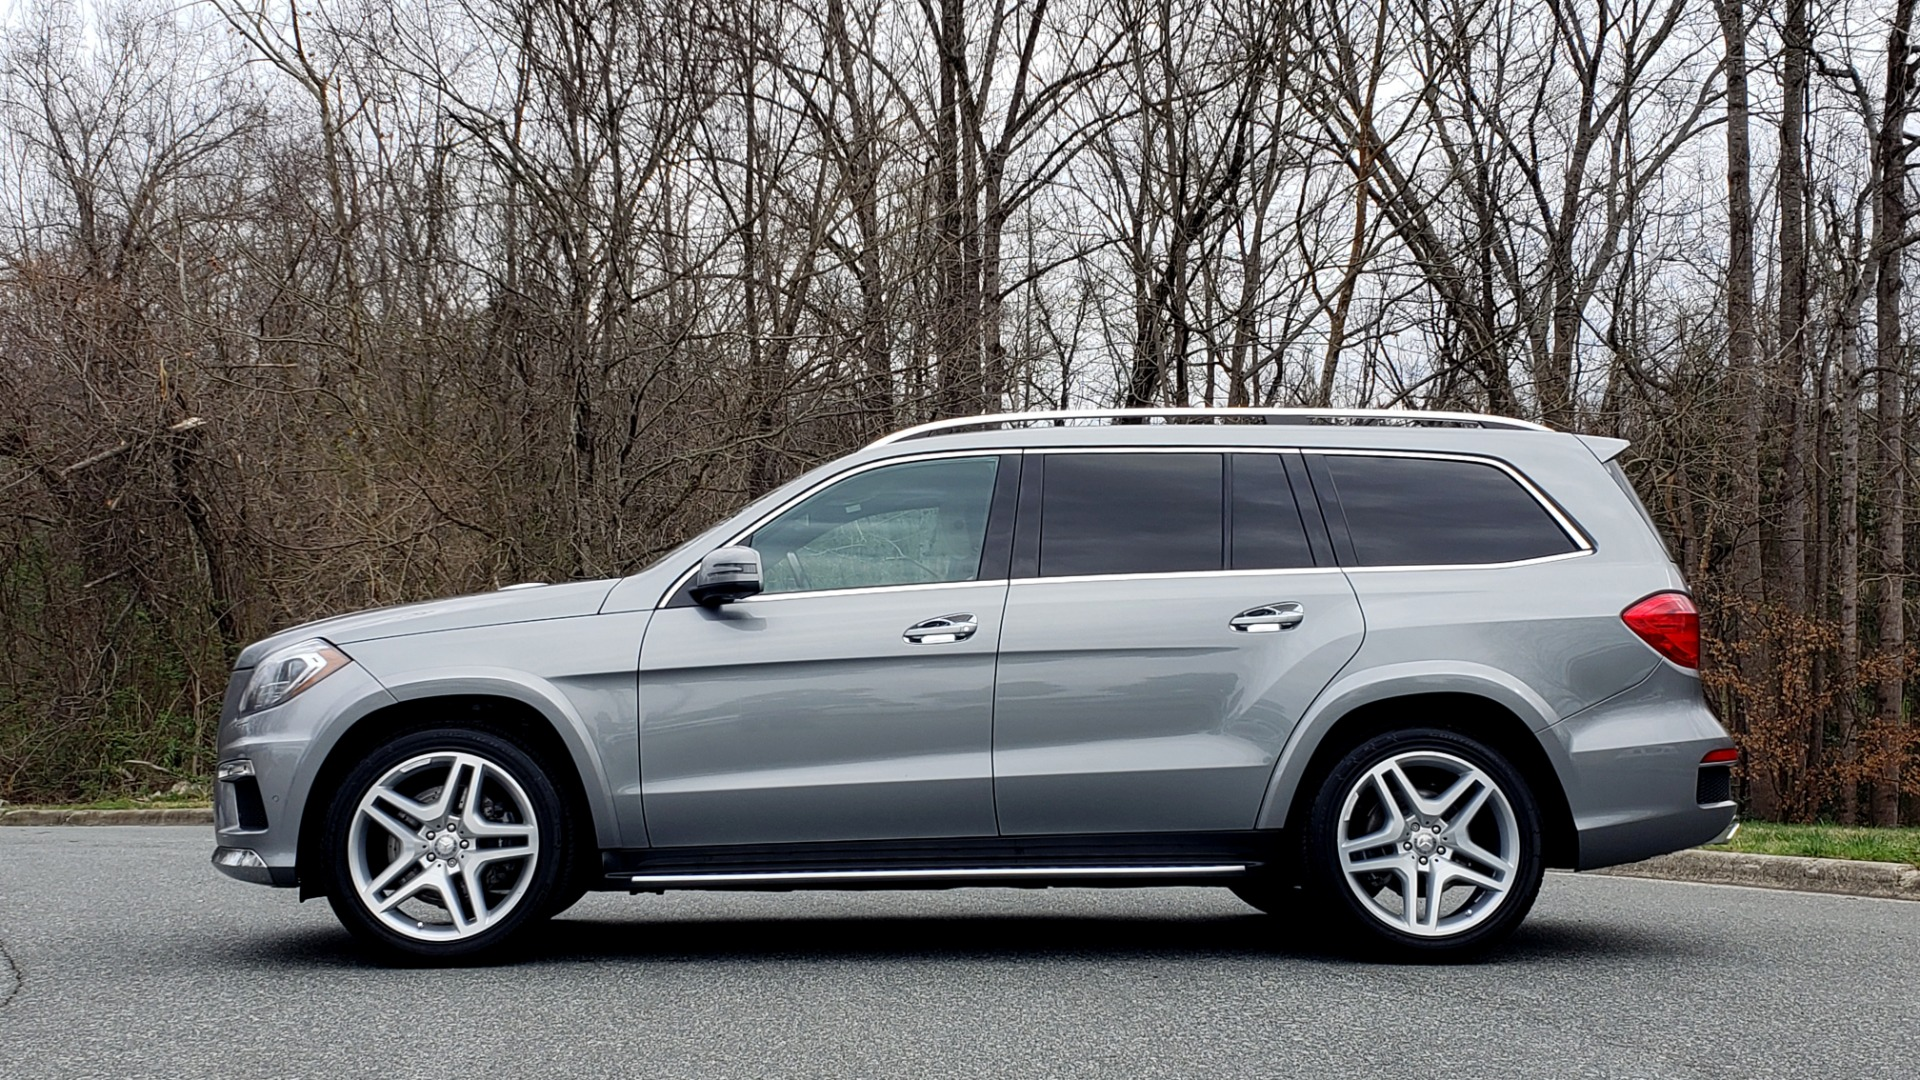 Used 2016 Mercedes-Benz GL 550 4MATIC / NAV / DRVR ASST / DUAL-ROOF / REARVIEW for sale Sold at Formula Imports in Charlotte NC 28227 2